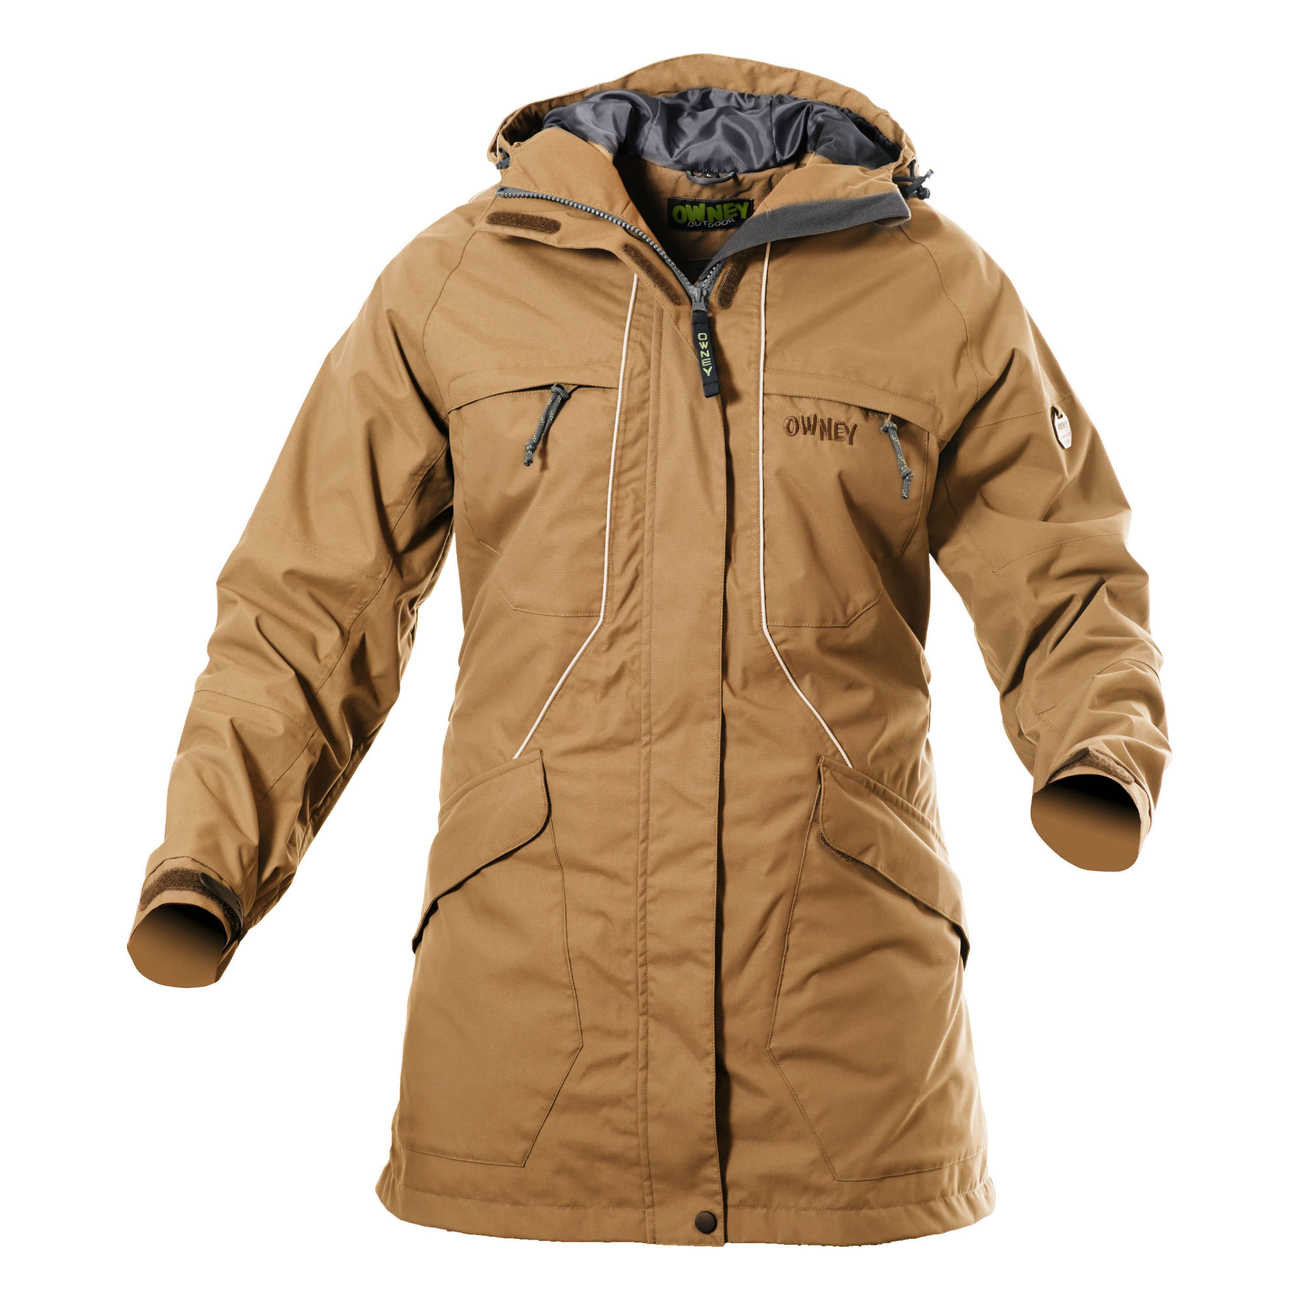 Owney Outdoor Parka für Damen Tuvaq, Bild 6